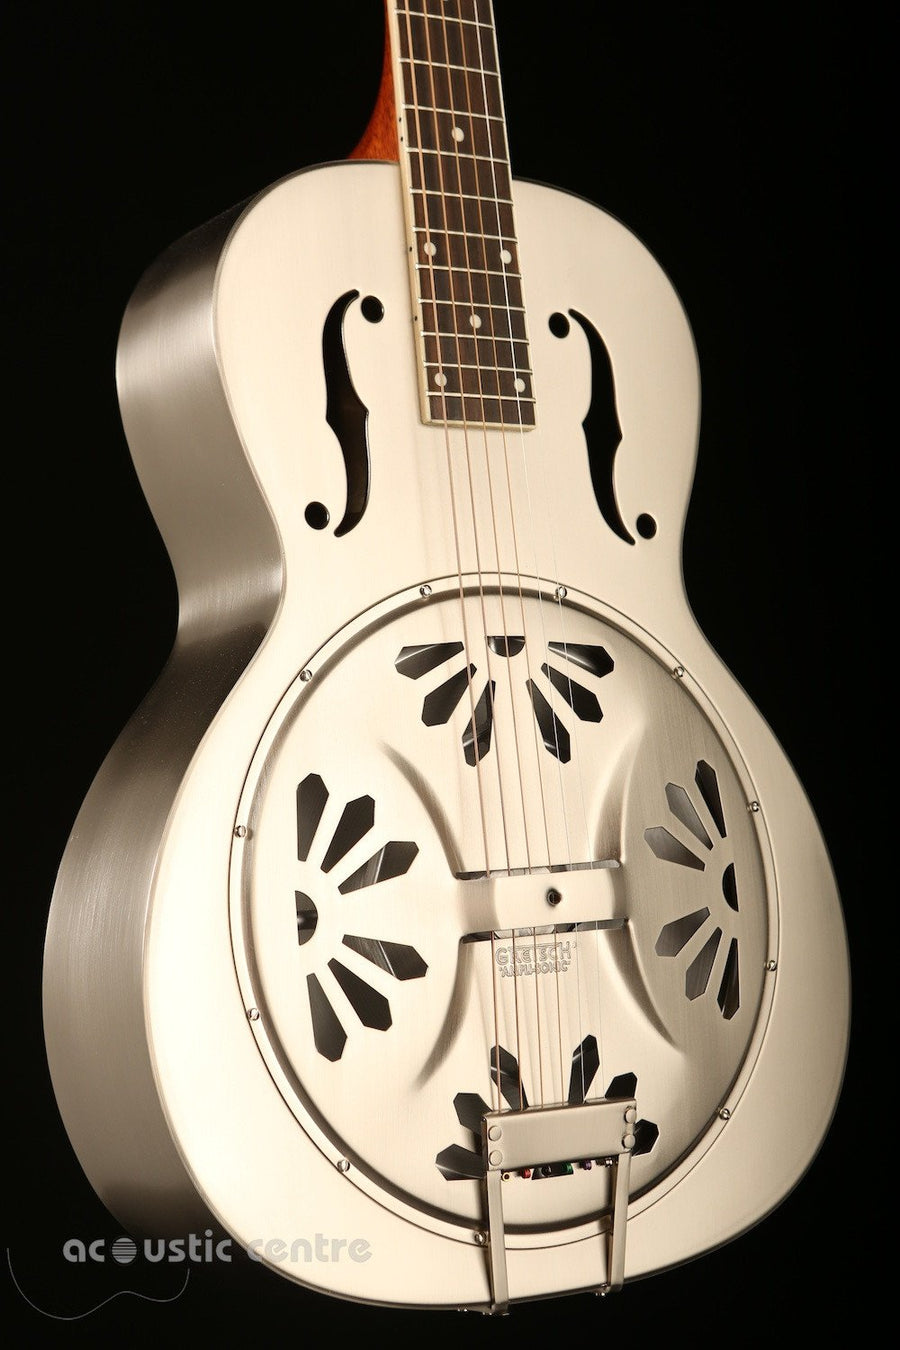 Gretsch G9221 Bobtail Steel A/E  Resonator - acousticcentre